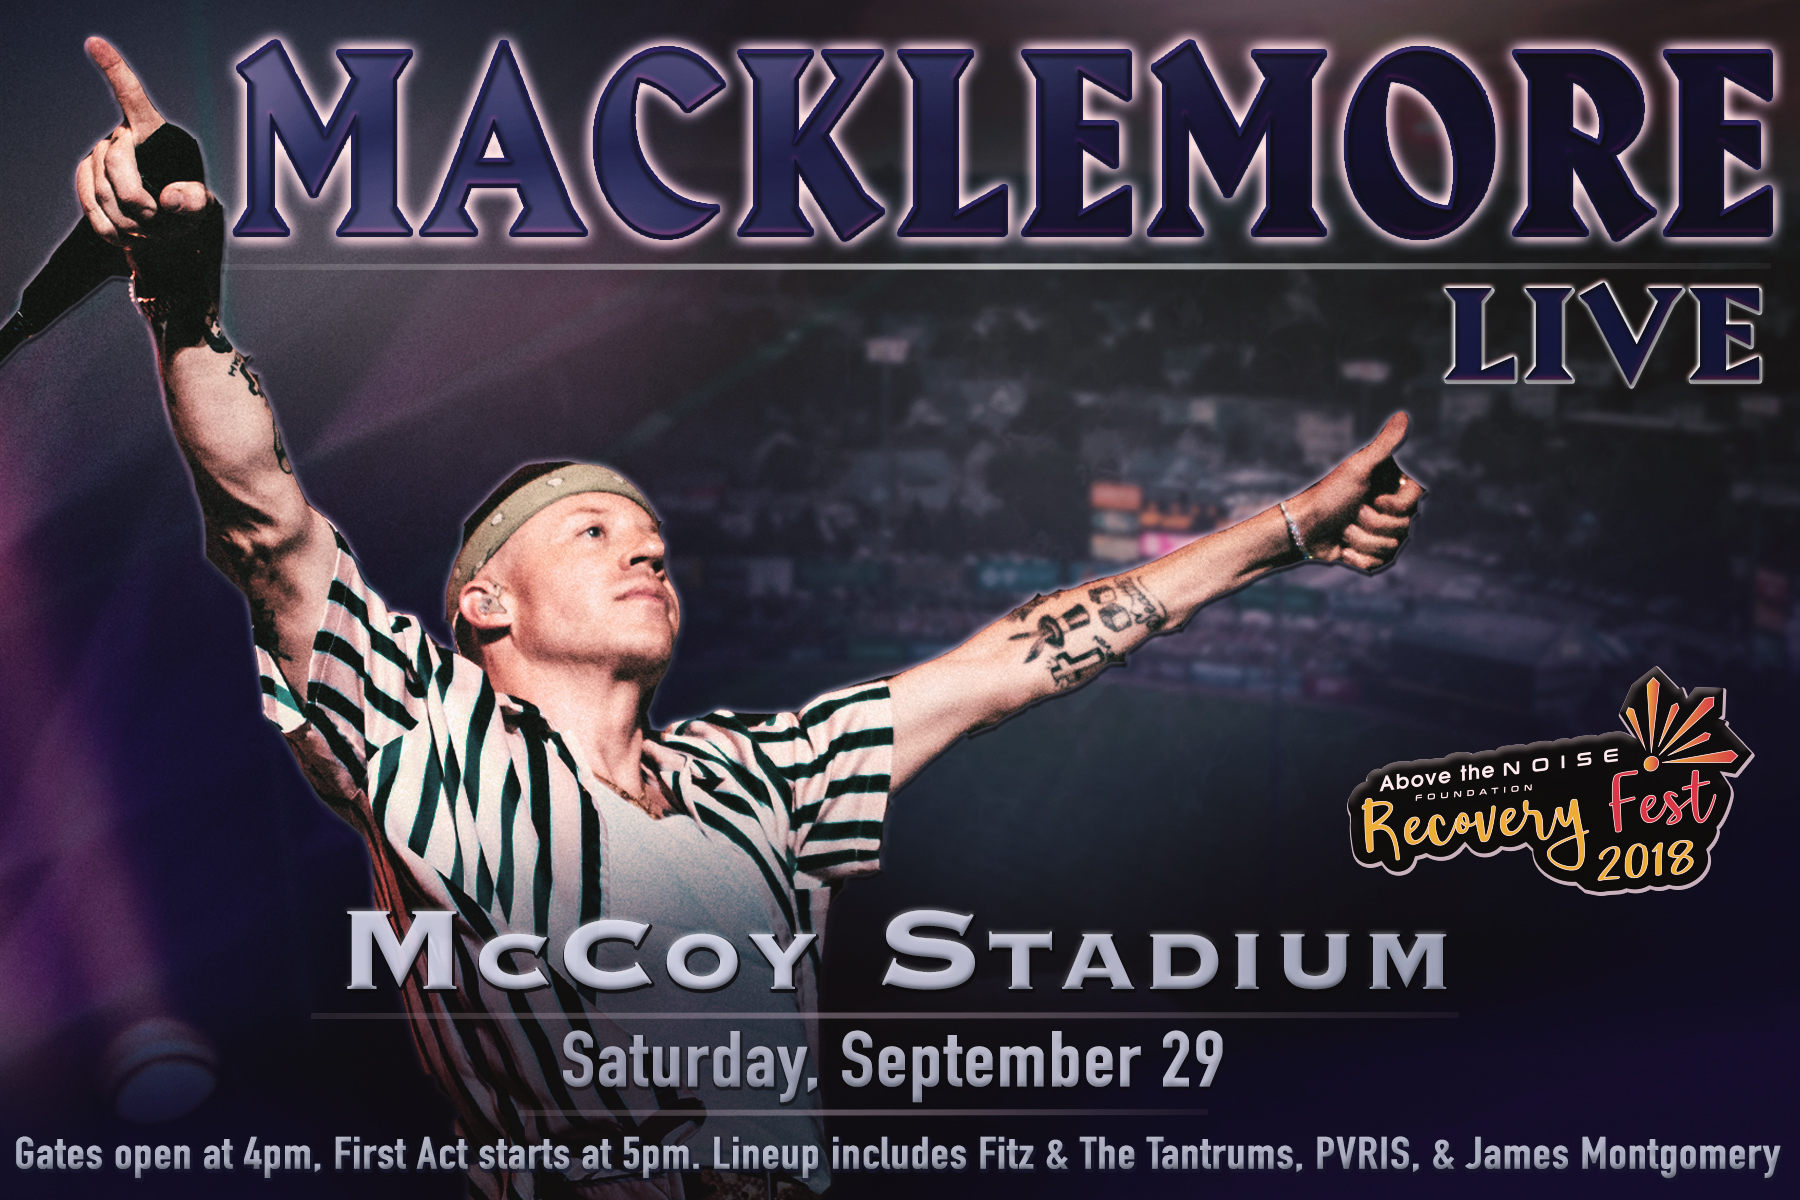 McCoy Stadium: Recovery Fest 2018 - September 29